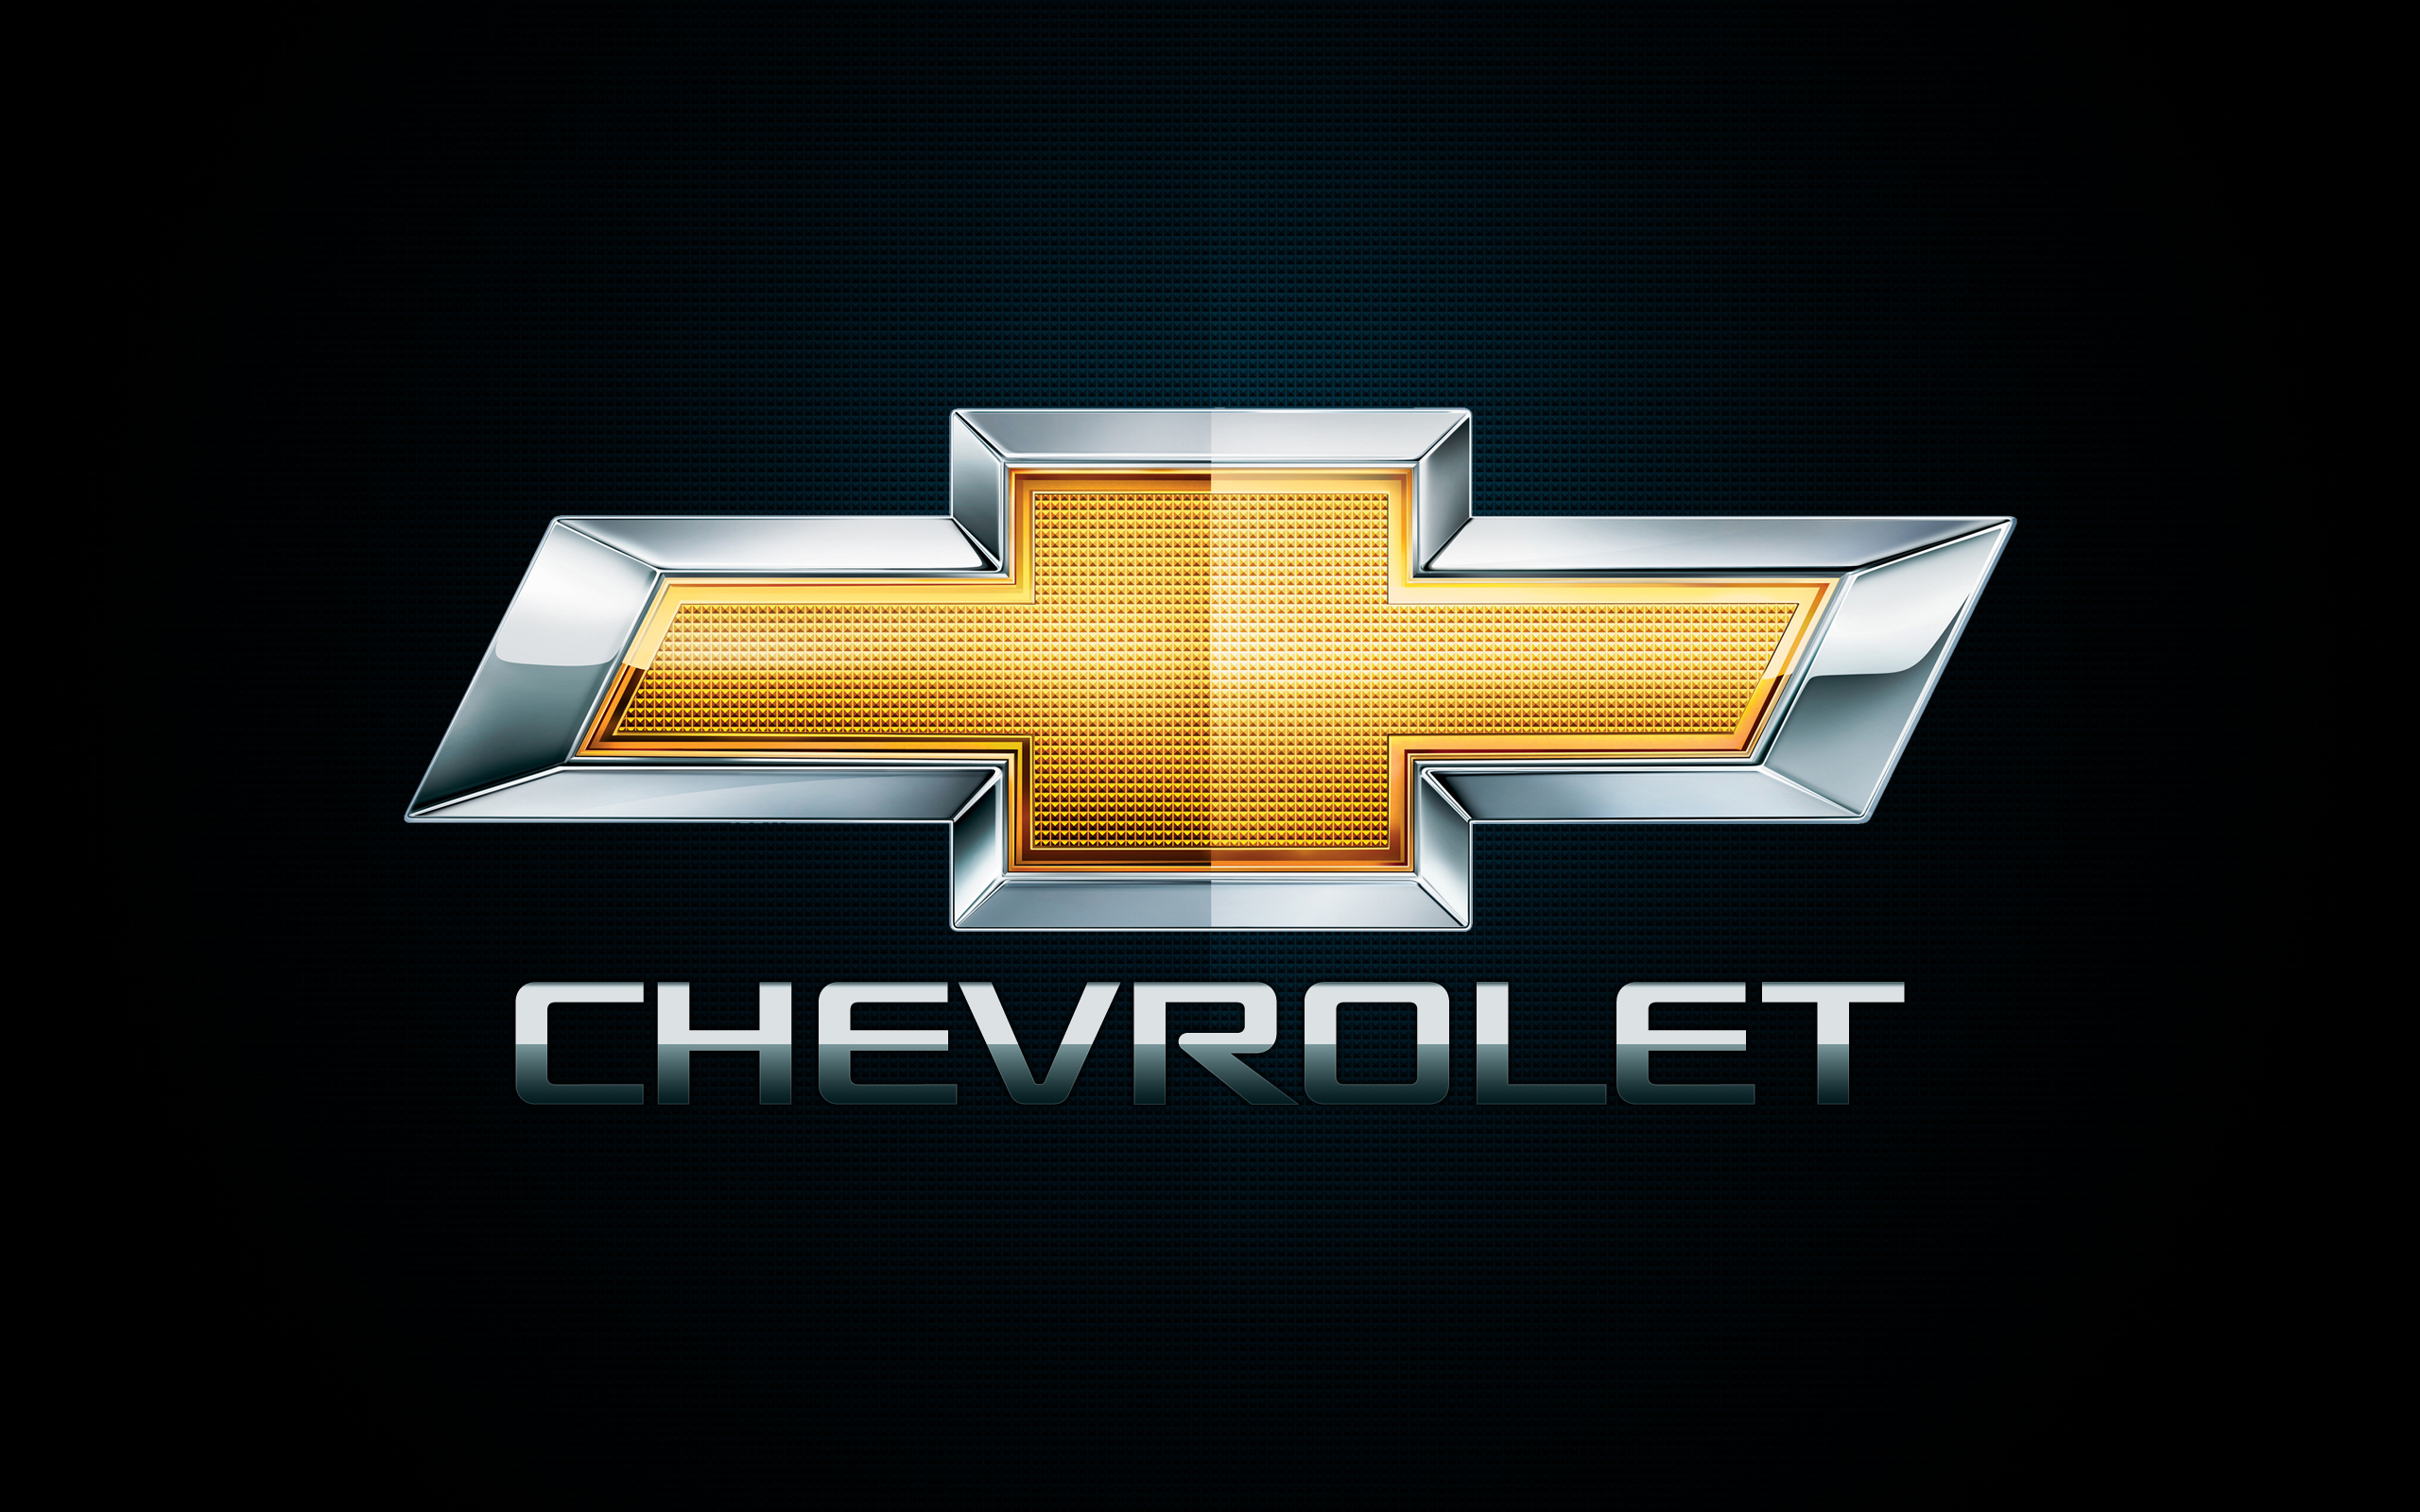 Chevrolet clipart team chevy Clip on Art Art Download